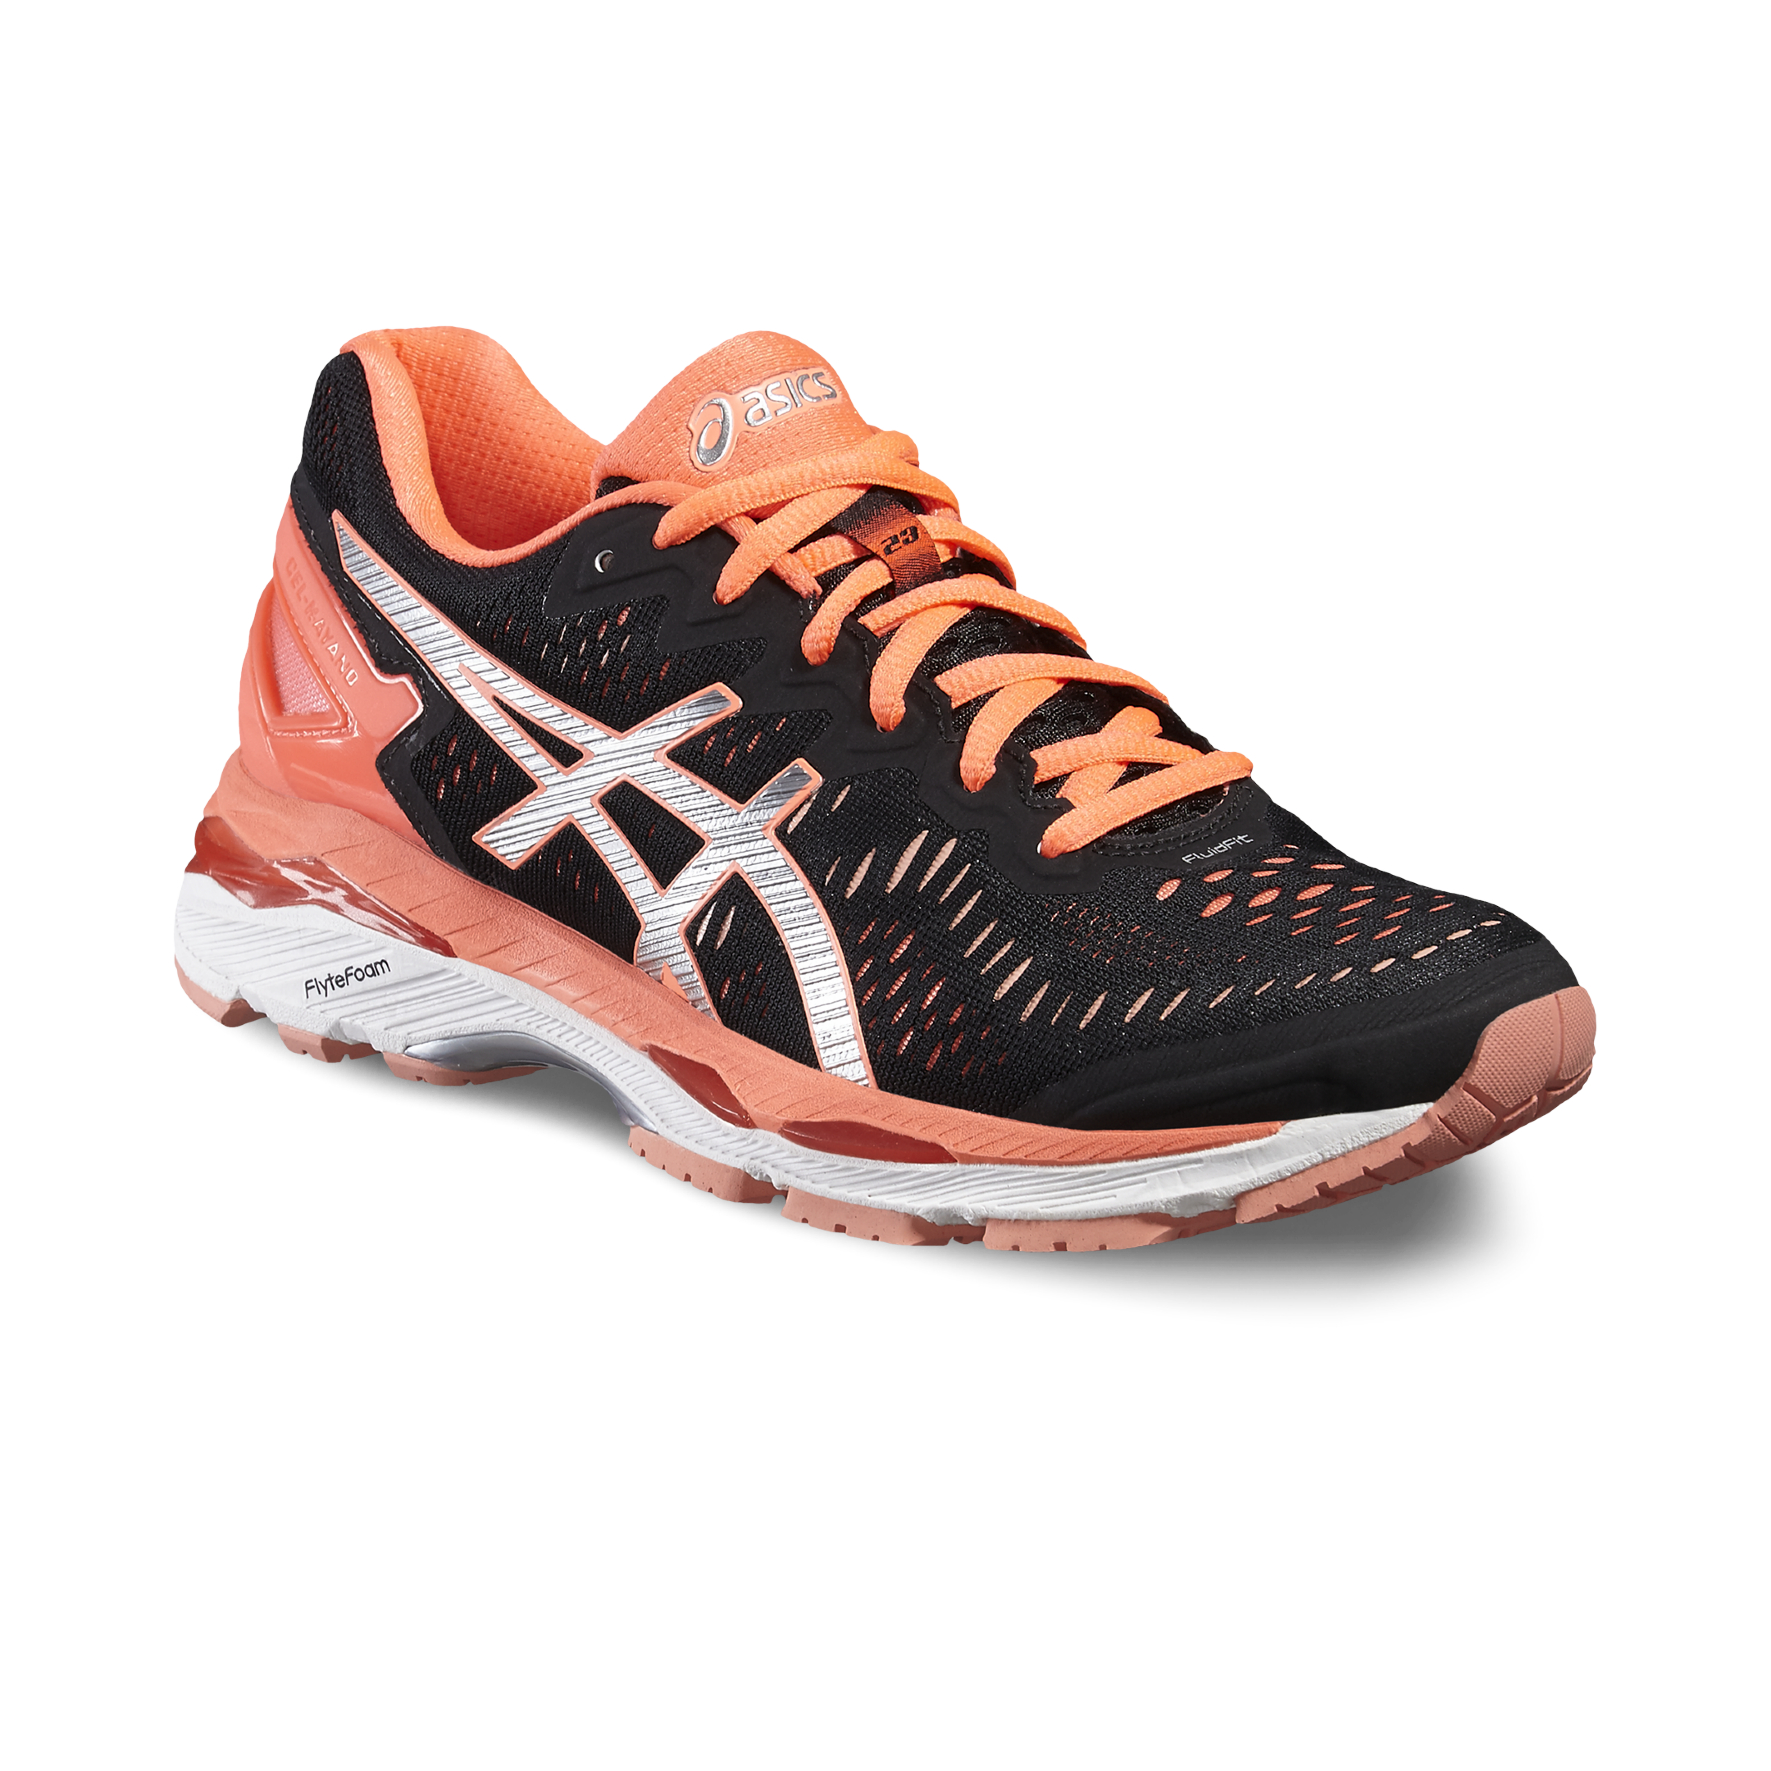 Acheter 19939 asics gel kayano gel 23 womens Orange> womens Jusqu à OFF76% de remise f0204d3 - kyomin.website